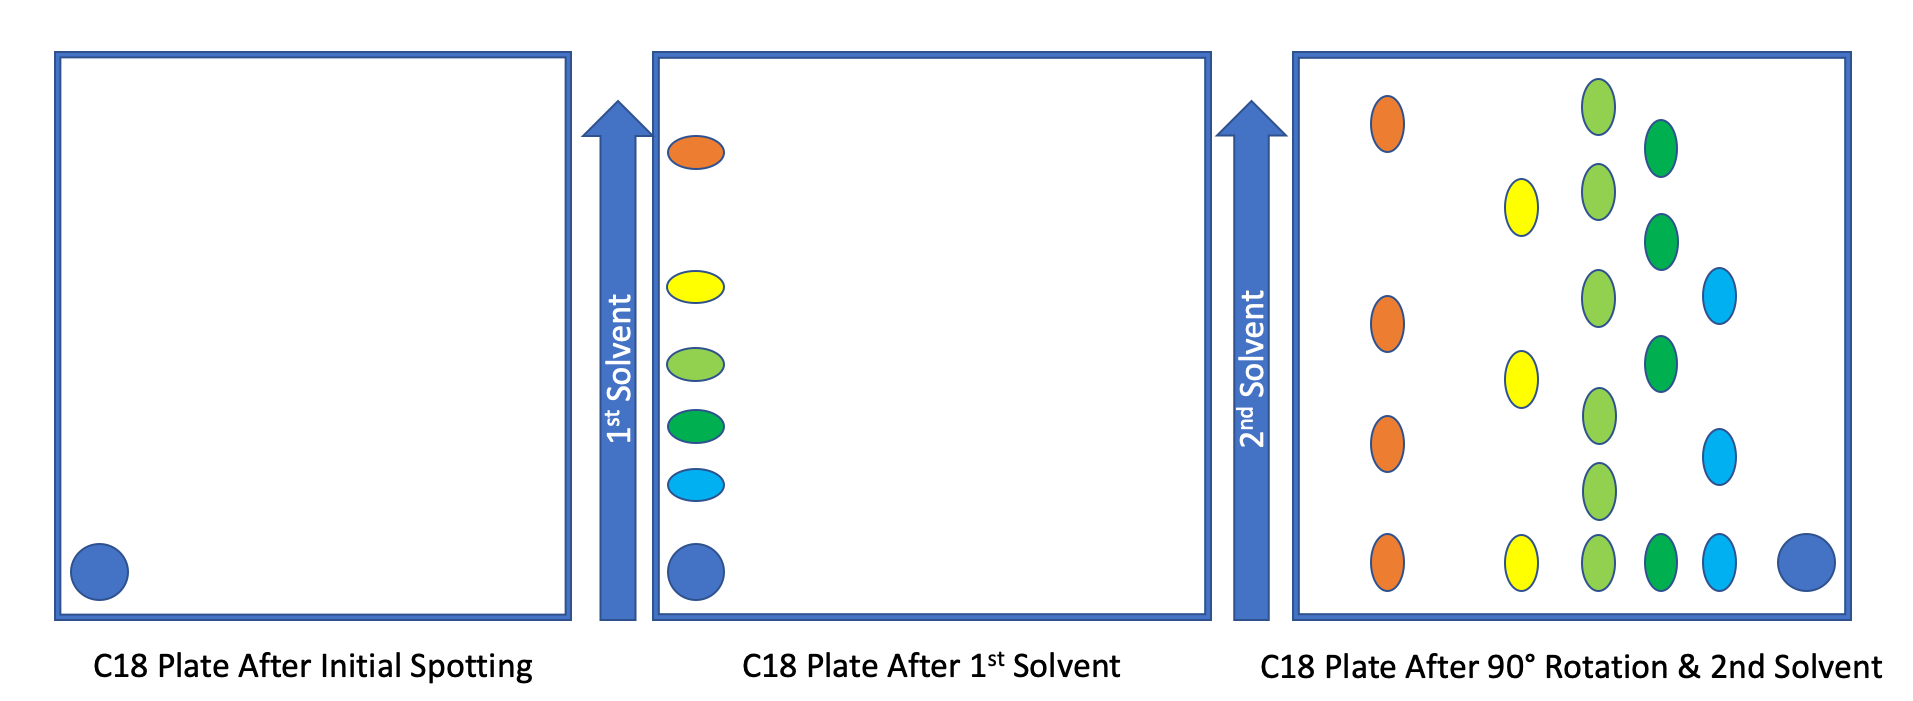 2D-Thin Layer Chromatography schematic